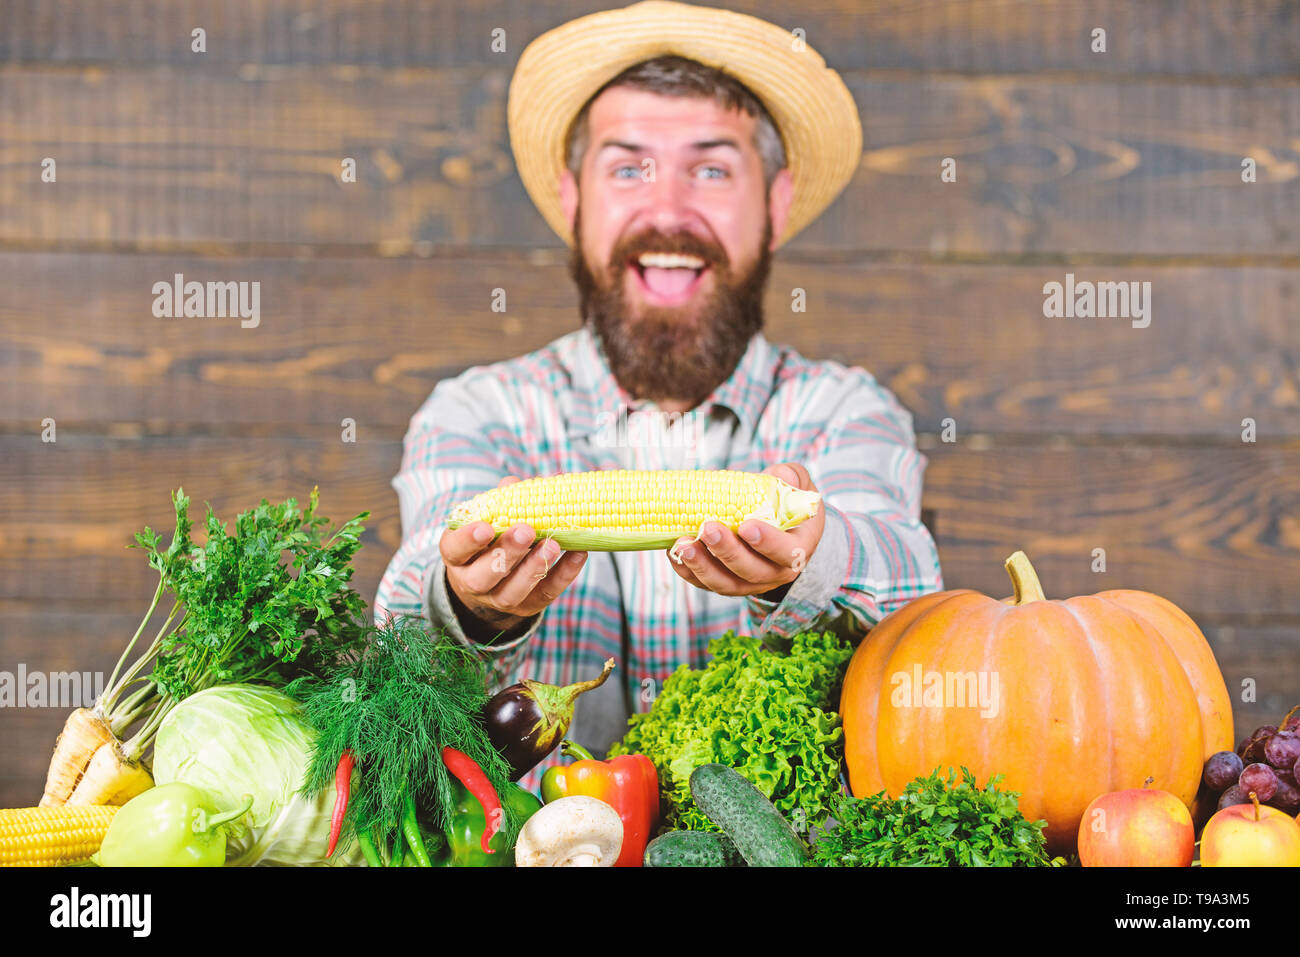 Grow organic crops. Community gardens and farms. Healthy lifestyle. Farmer hold corncob or maize wooden background. Farmer presenting organic homegrown vegetables. Homegrown organic harvest benefits. - Stock Image